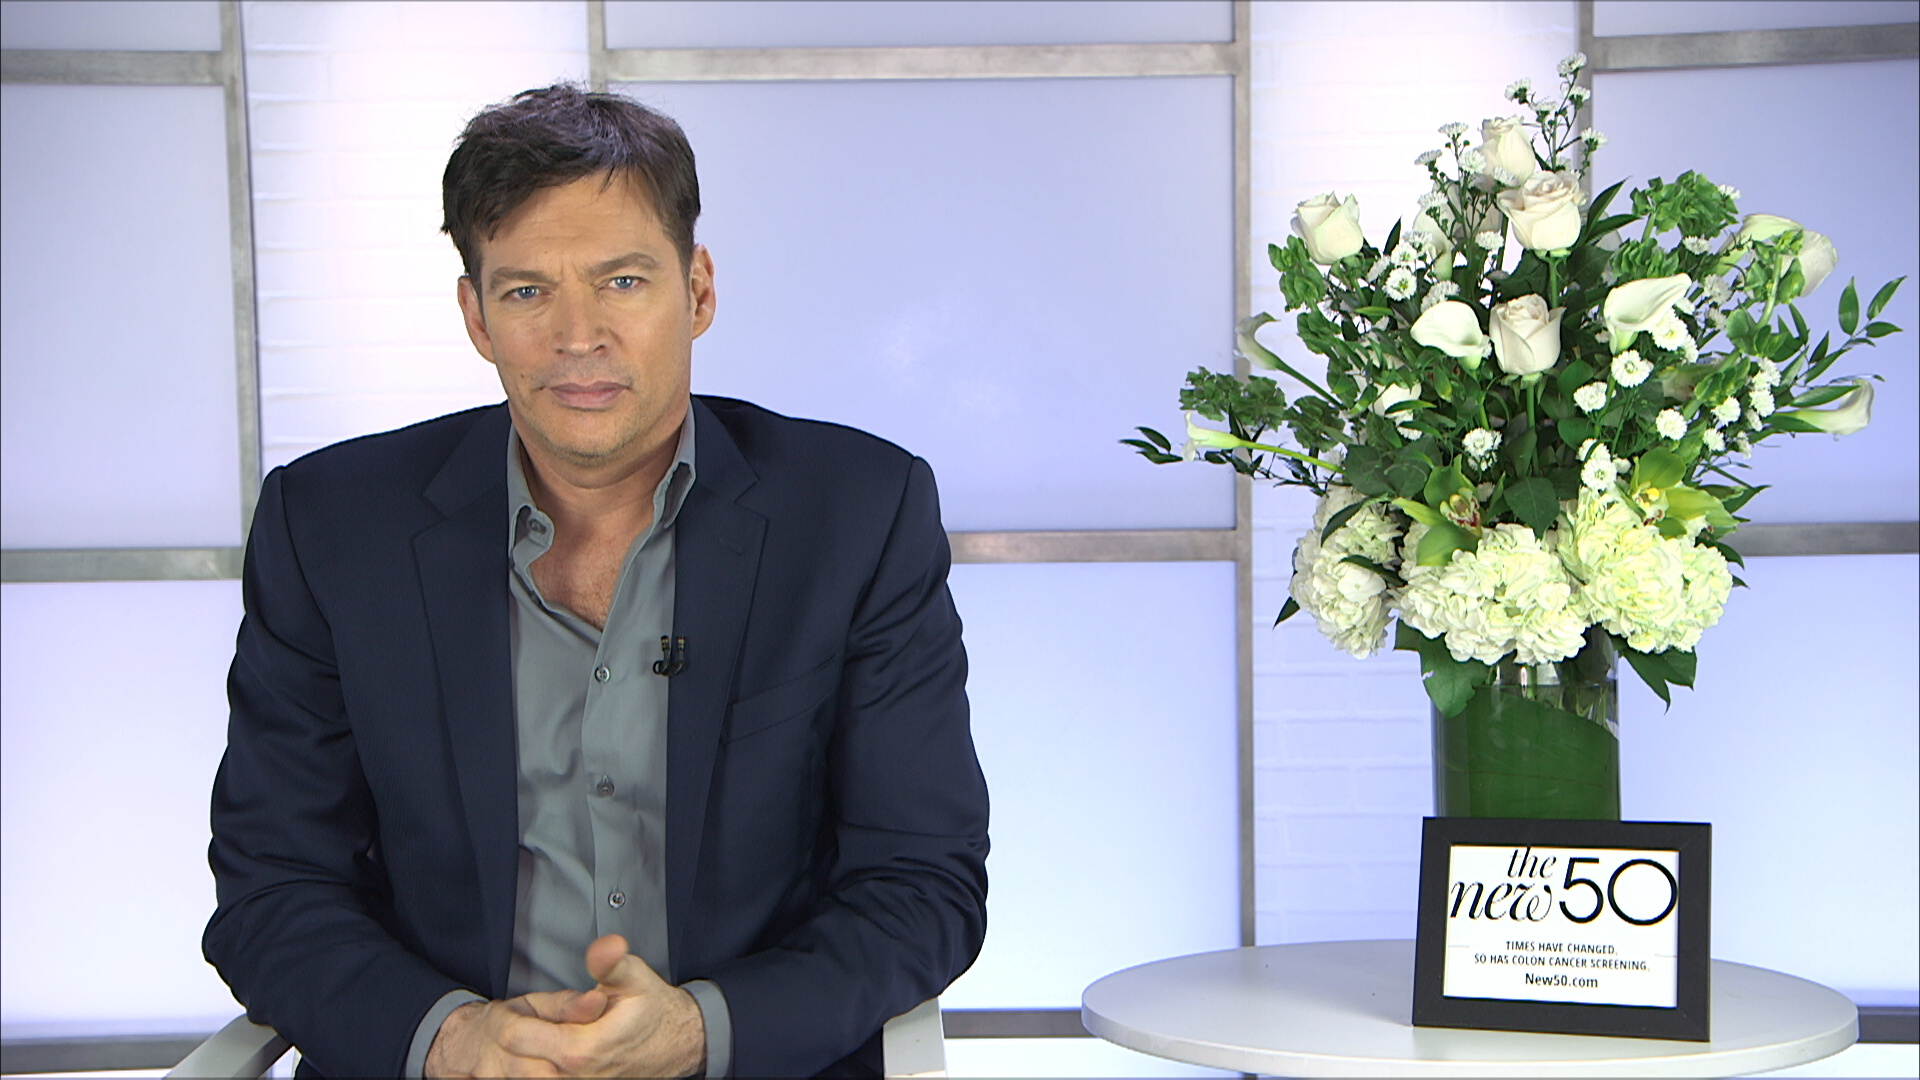 Harry Connick Jr. on our Brick and Plexi Set